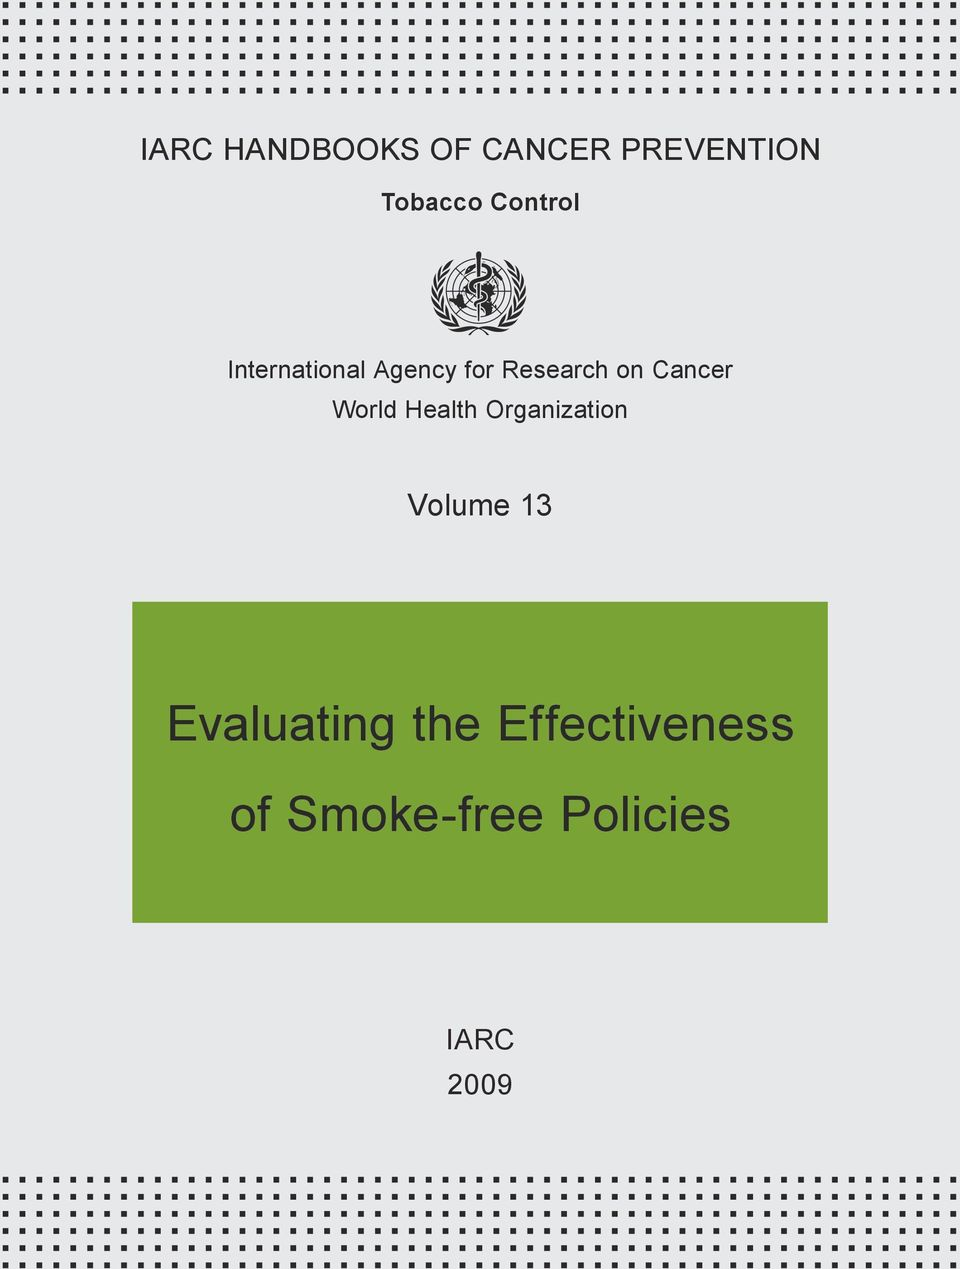 Cancer World Health Organization Volume 13